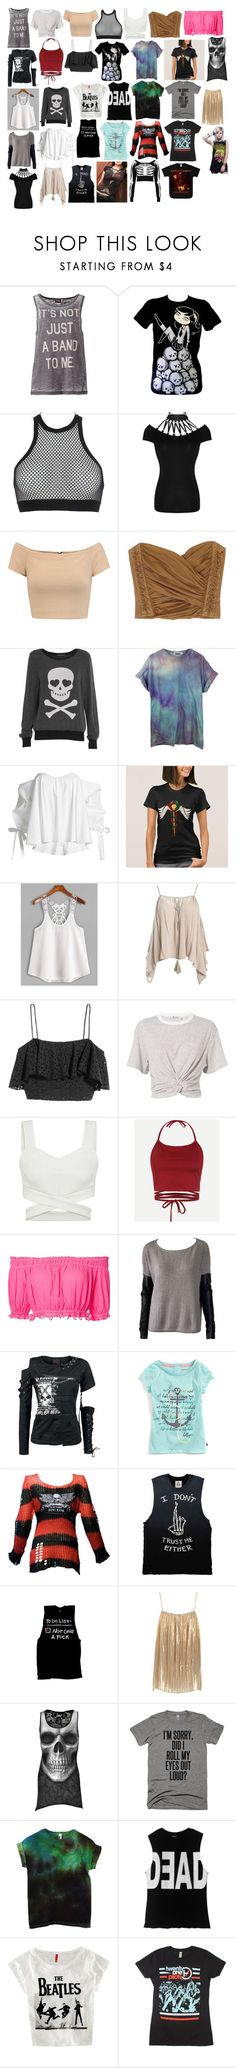 """Girl Shirts 27"" by spellcasters ❤ liked on Polyvore featuring ONLY, Dsquared2, Alice + Olivia, Balmain, Wildfox, Caroline Constas, Sans Souci, T By Alexander Wang, Apiece Apart and PJK Patterson J. Kincaid"